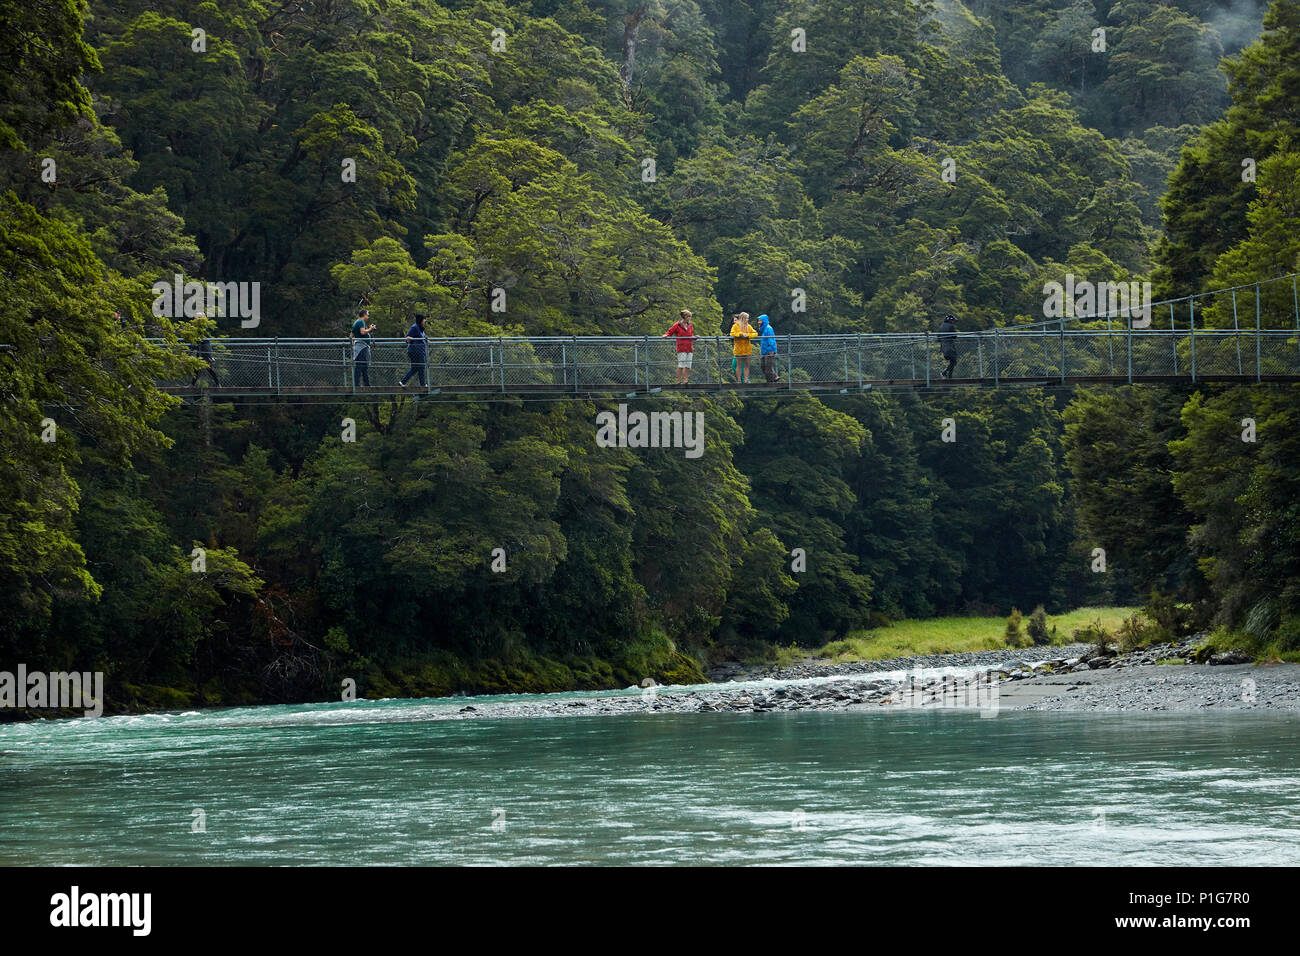 Tourists on footbridge over Makarora River, Blue Pools, Mount Aspiring National Park, Haast Pass, near Makarora, Otago, South Island, New Zealand - Stock Image